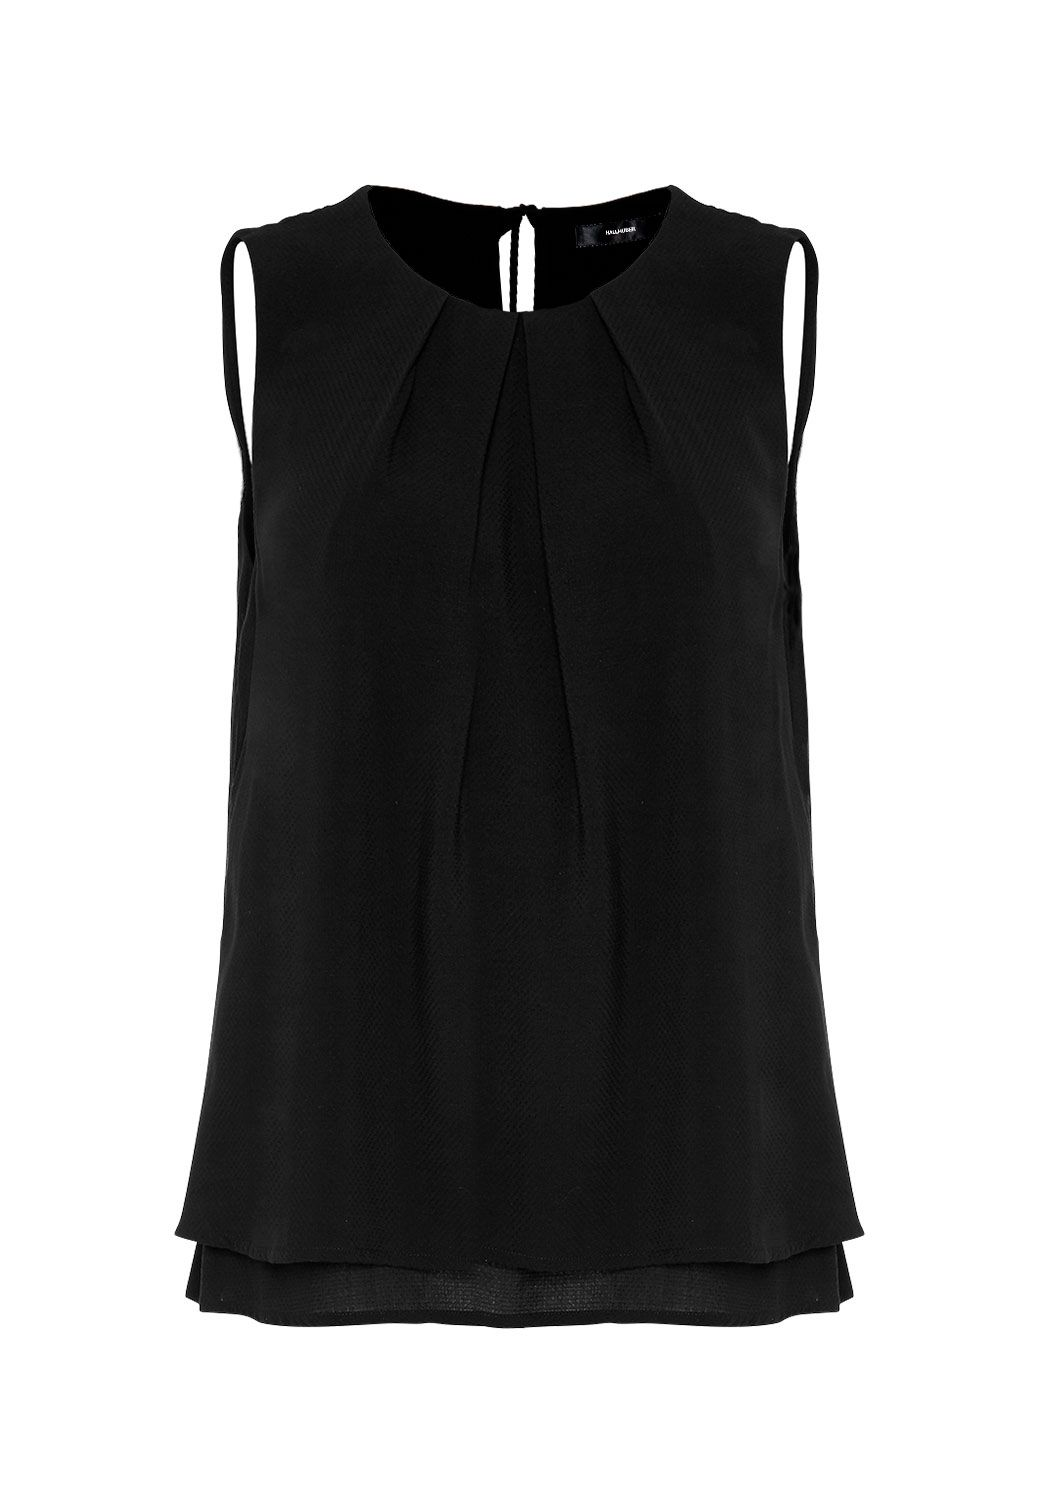 Hallhuber Swinging Layer Top, Black